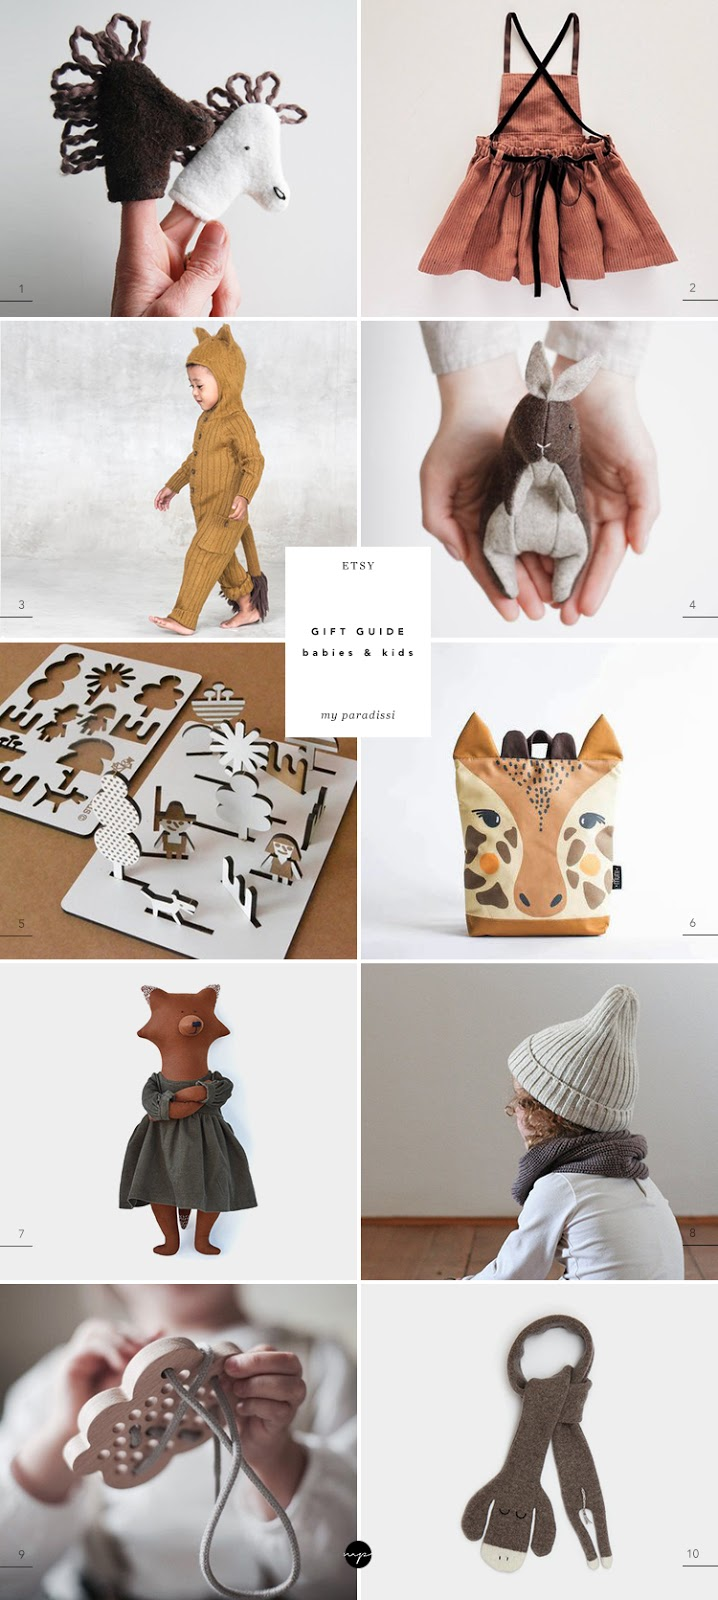 Best gifts for kids, handmade gifts for kids, unique gifts for kids, gifts for babies, gifts for toddlers, etsy gift guide curated by Eleni Psyllaki for My Paradissi